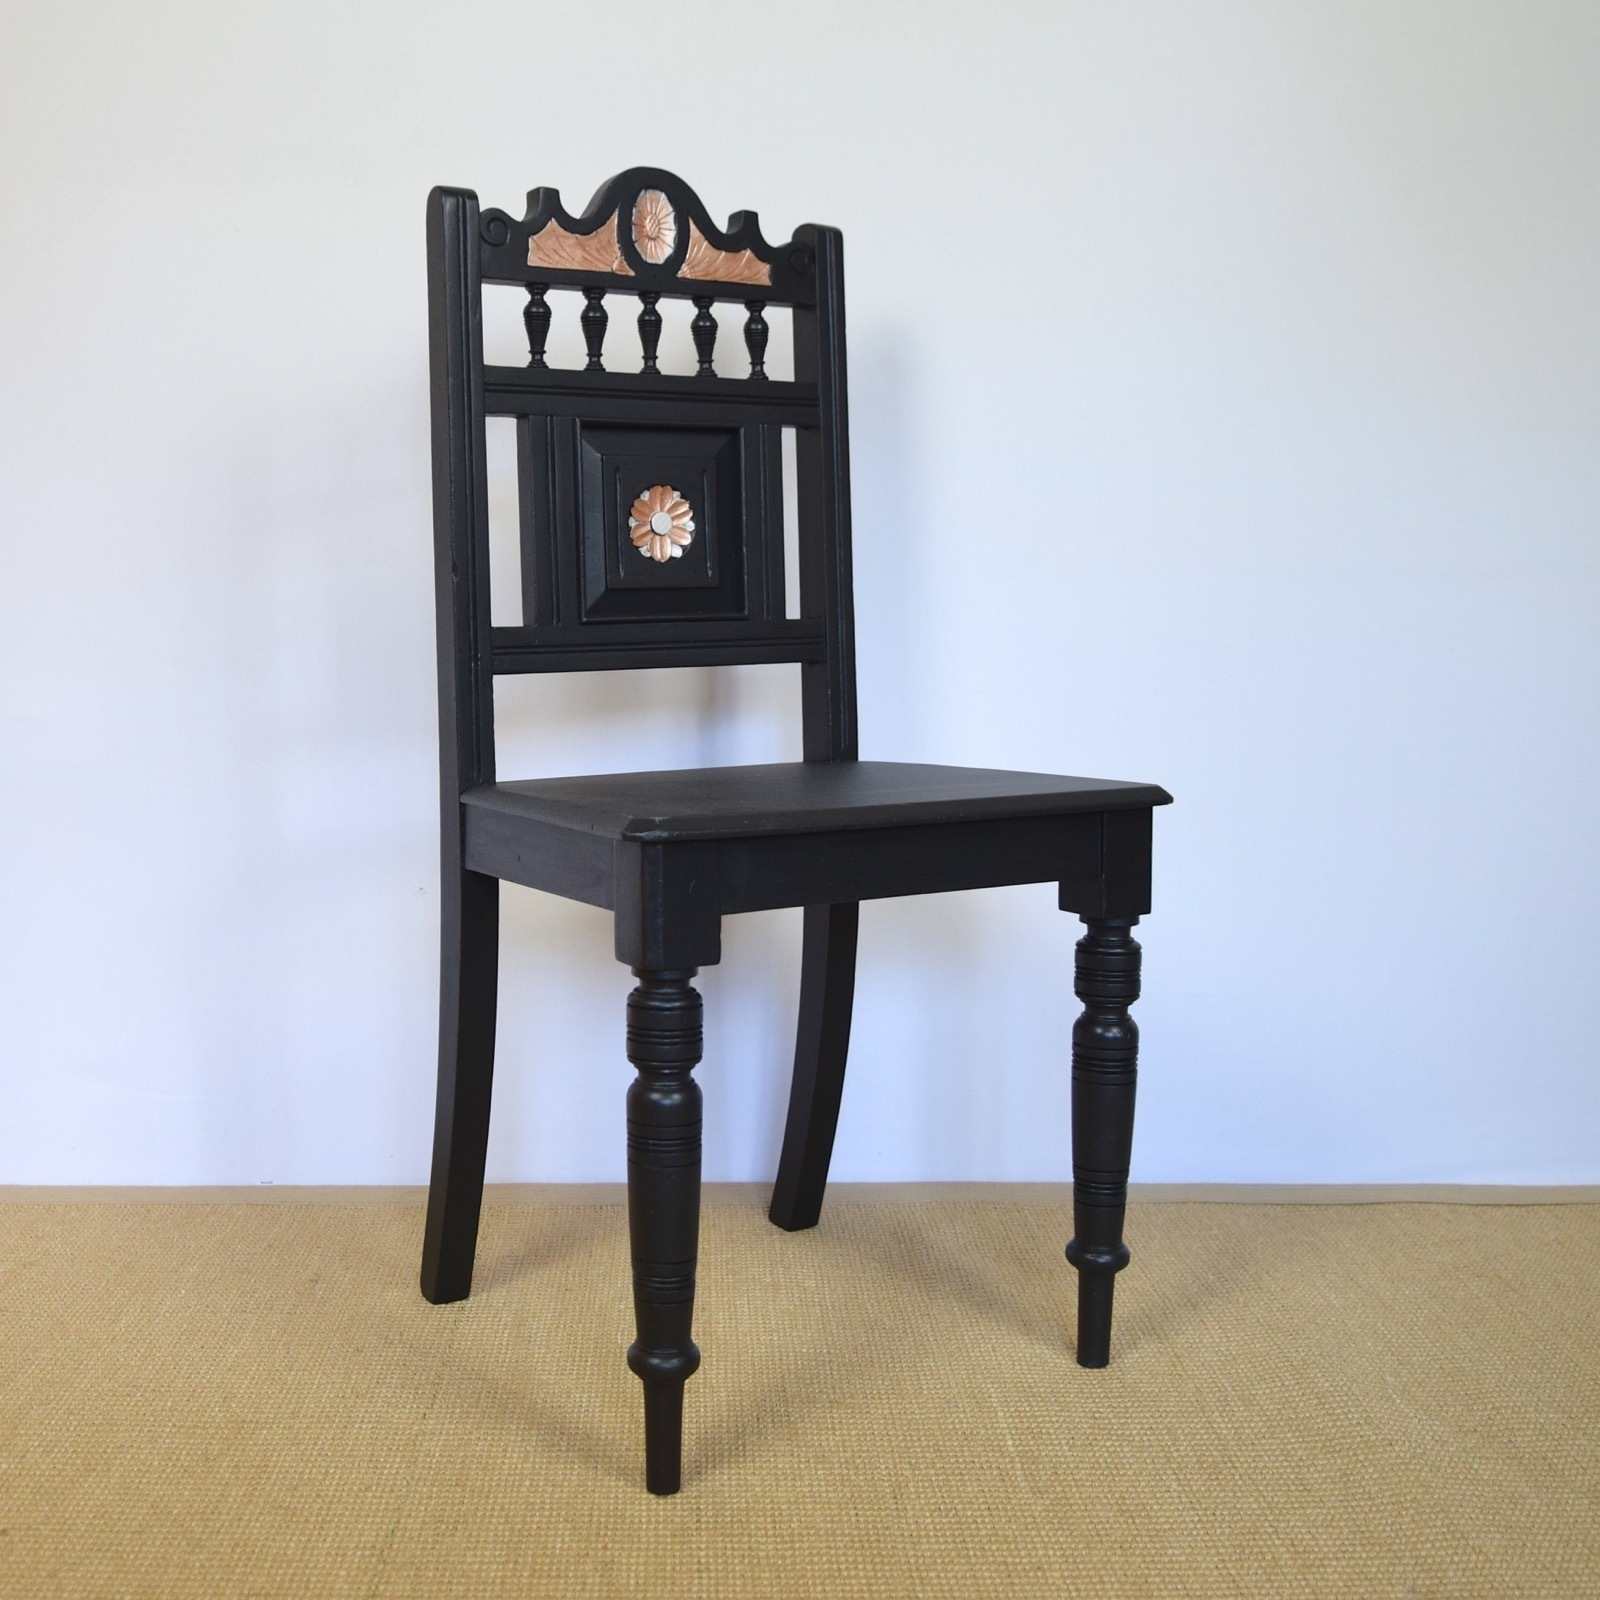 Vintage Accent Chair Vintage Hall Chair Painted Furniture Black Side Chair Accent Chair